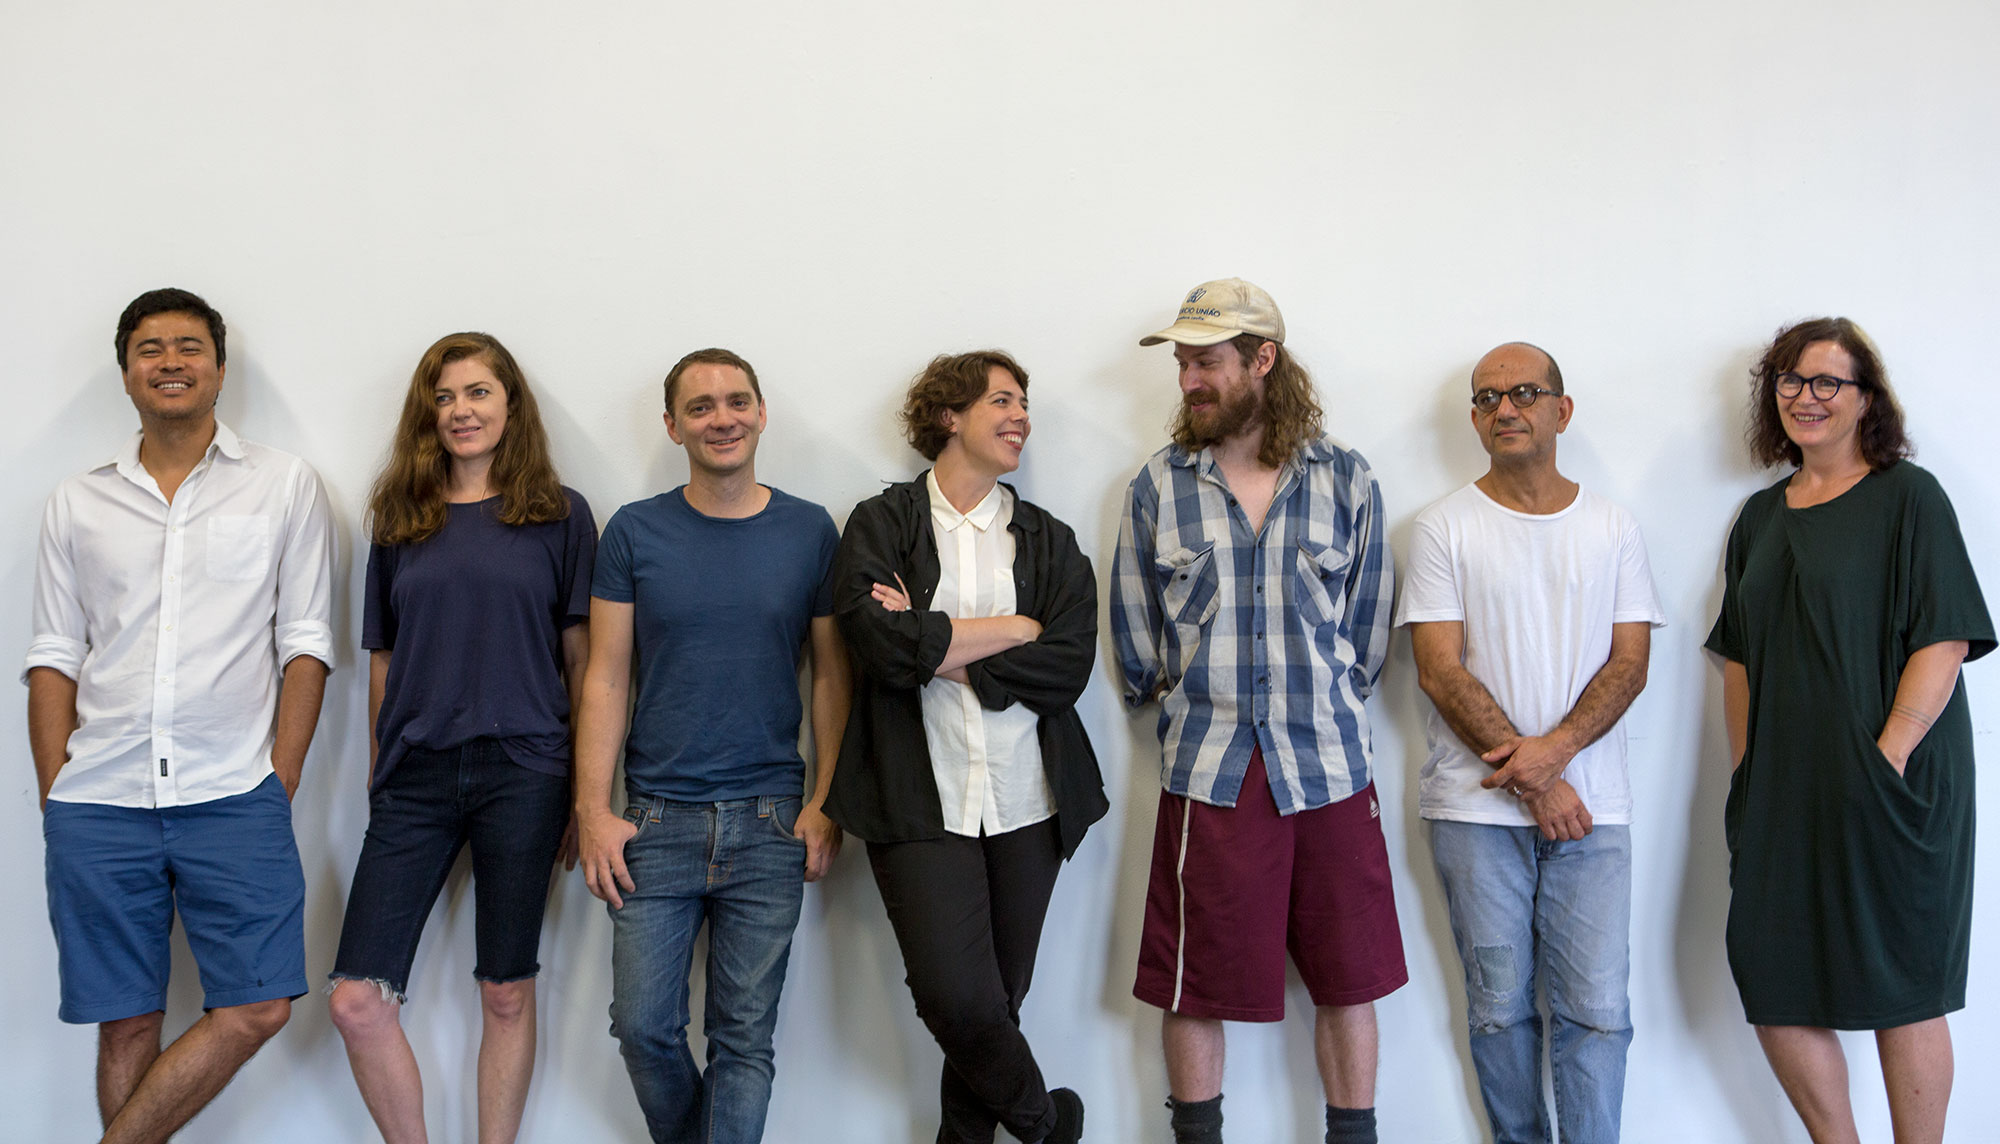 2015 One Year Studio Artists Khadim Ali, Clare Milledge, Tim Silver, Kelly Doley, Nick Dorey, Hany Armanious and Mikala Dwyer. Photo: Jessica Maurer